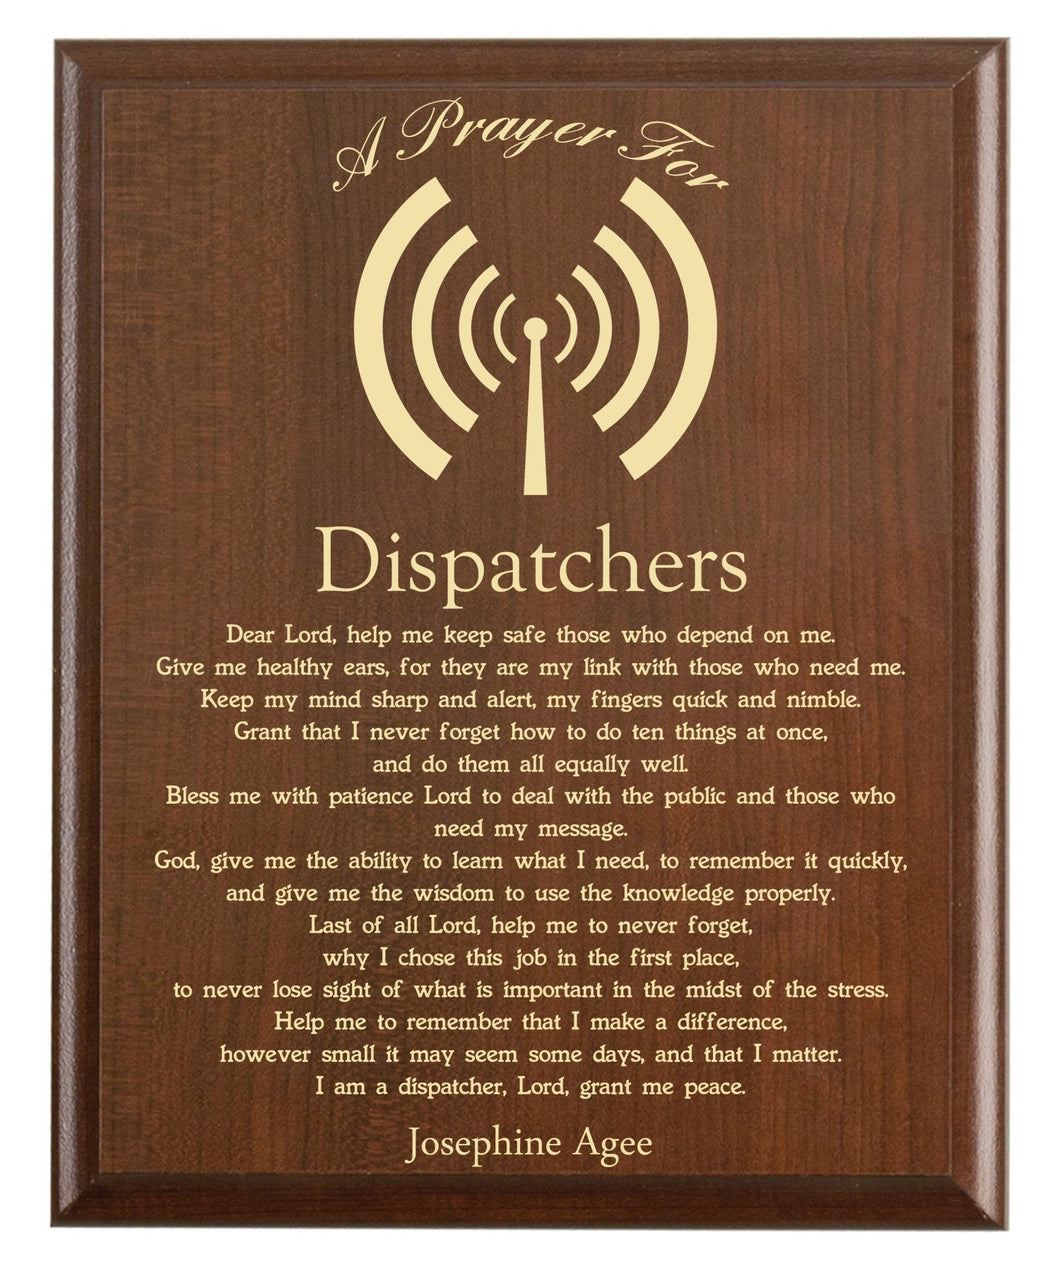 Christian prayer for a dispatcher with industry logo and free personalization. Cherry finish with laser engraved text.